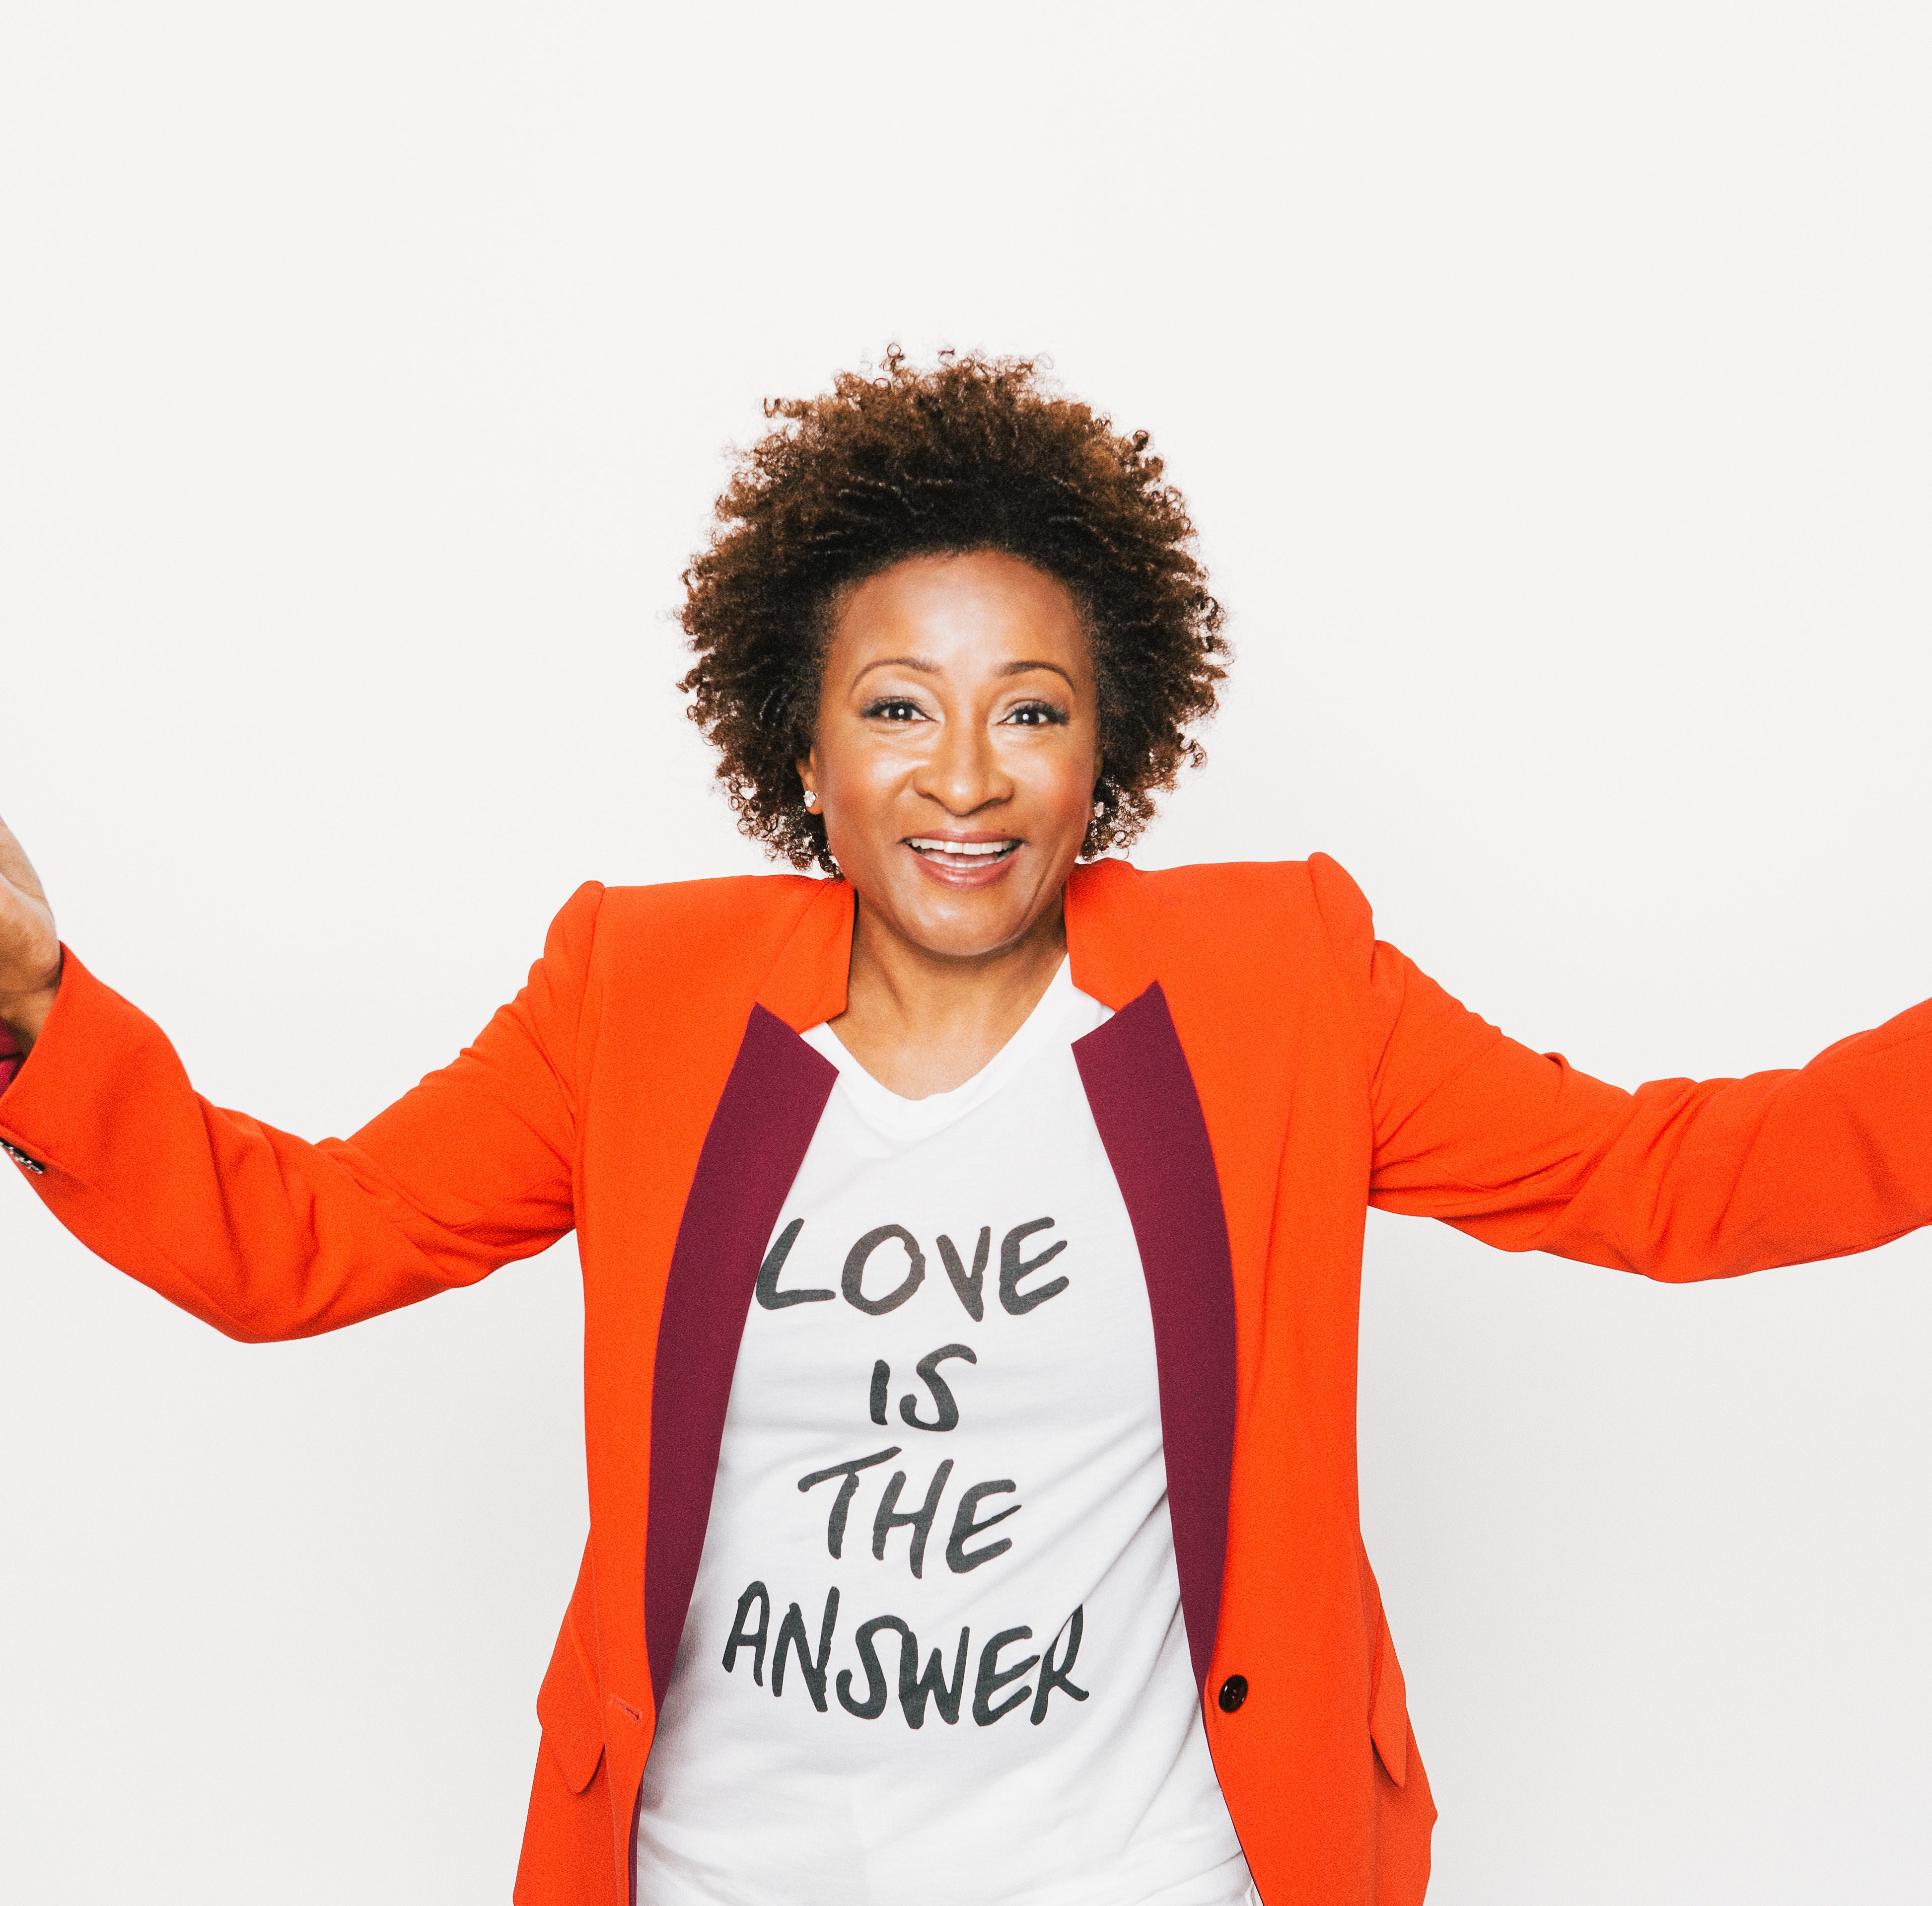 Wanda Sykes at UPAC: YouTube videos crack her up, jigsaw puzzles inspire her